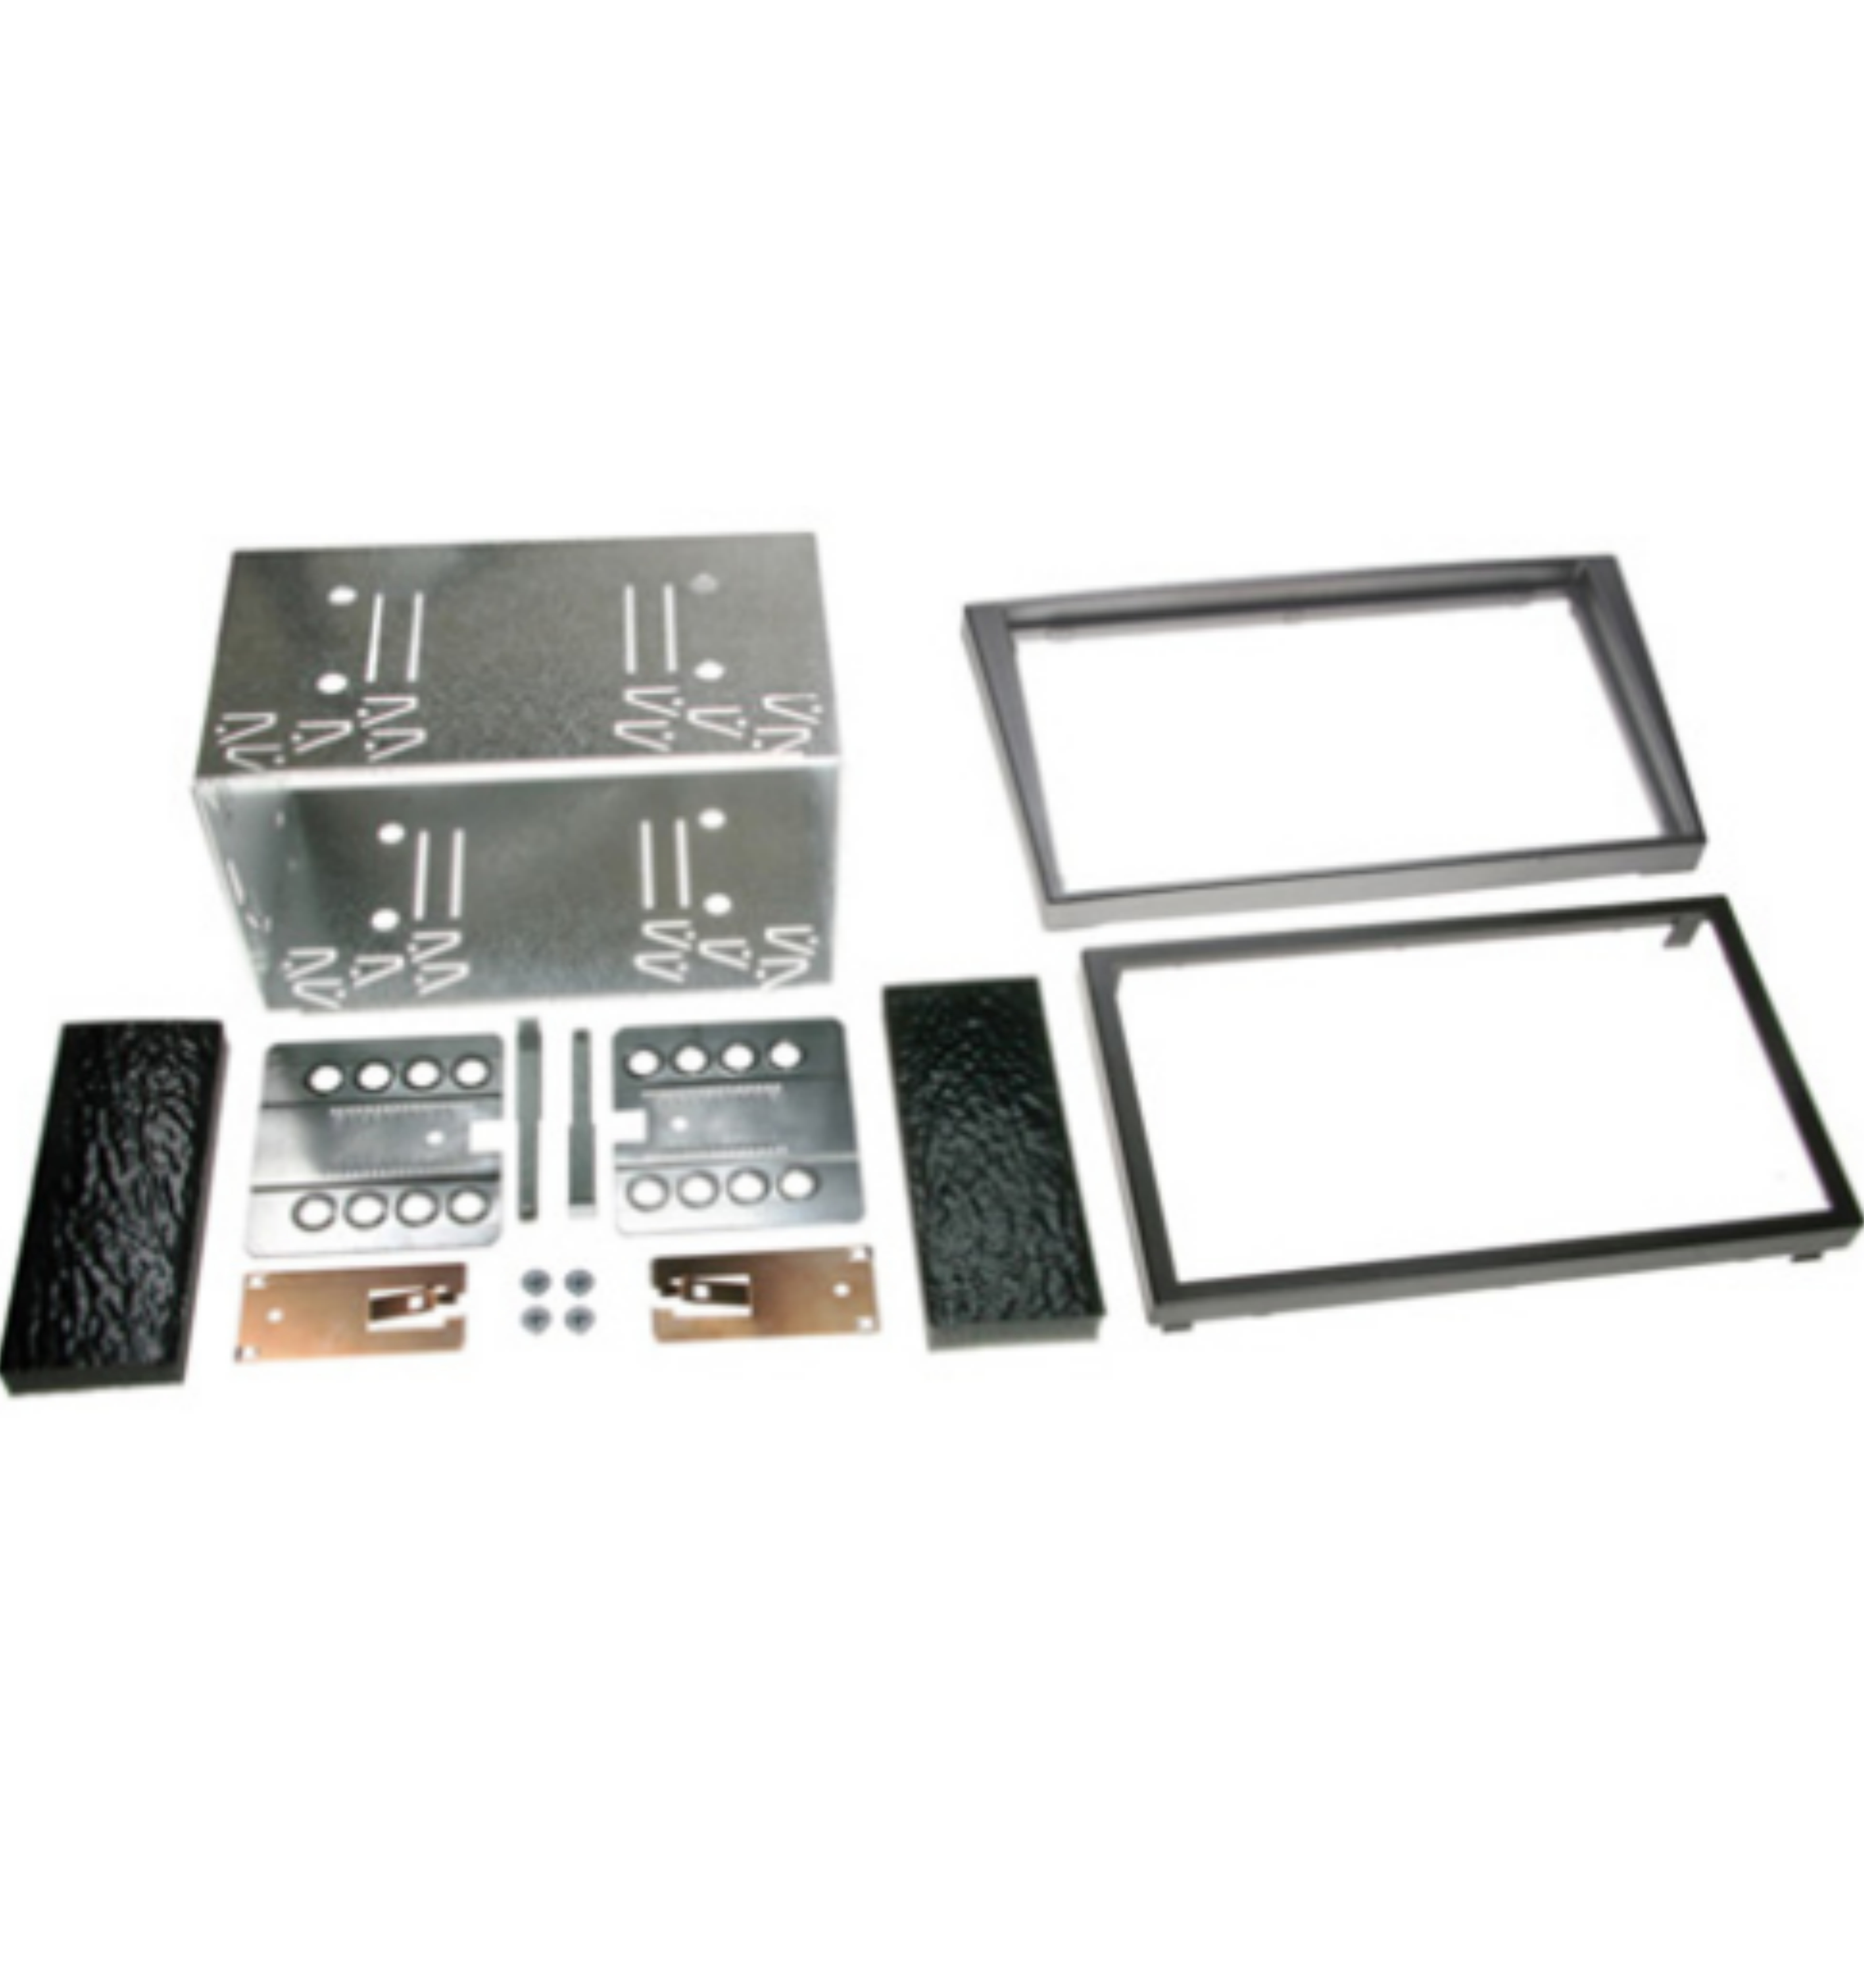 NEW C2 23VX13 Car Stereo Double Din Fascia Plate Adaptor  Vauxhall Vectra 2002>